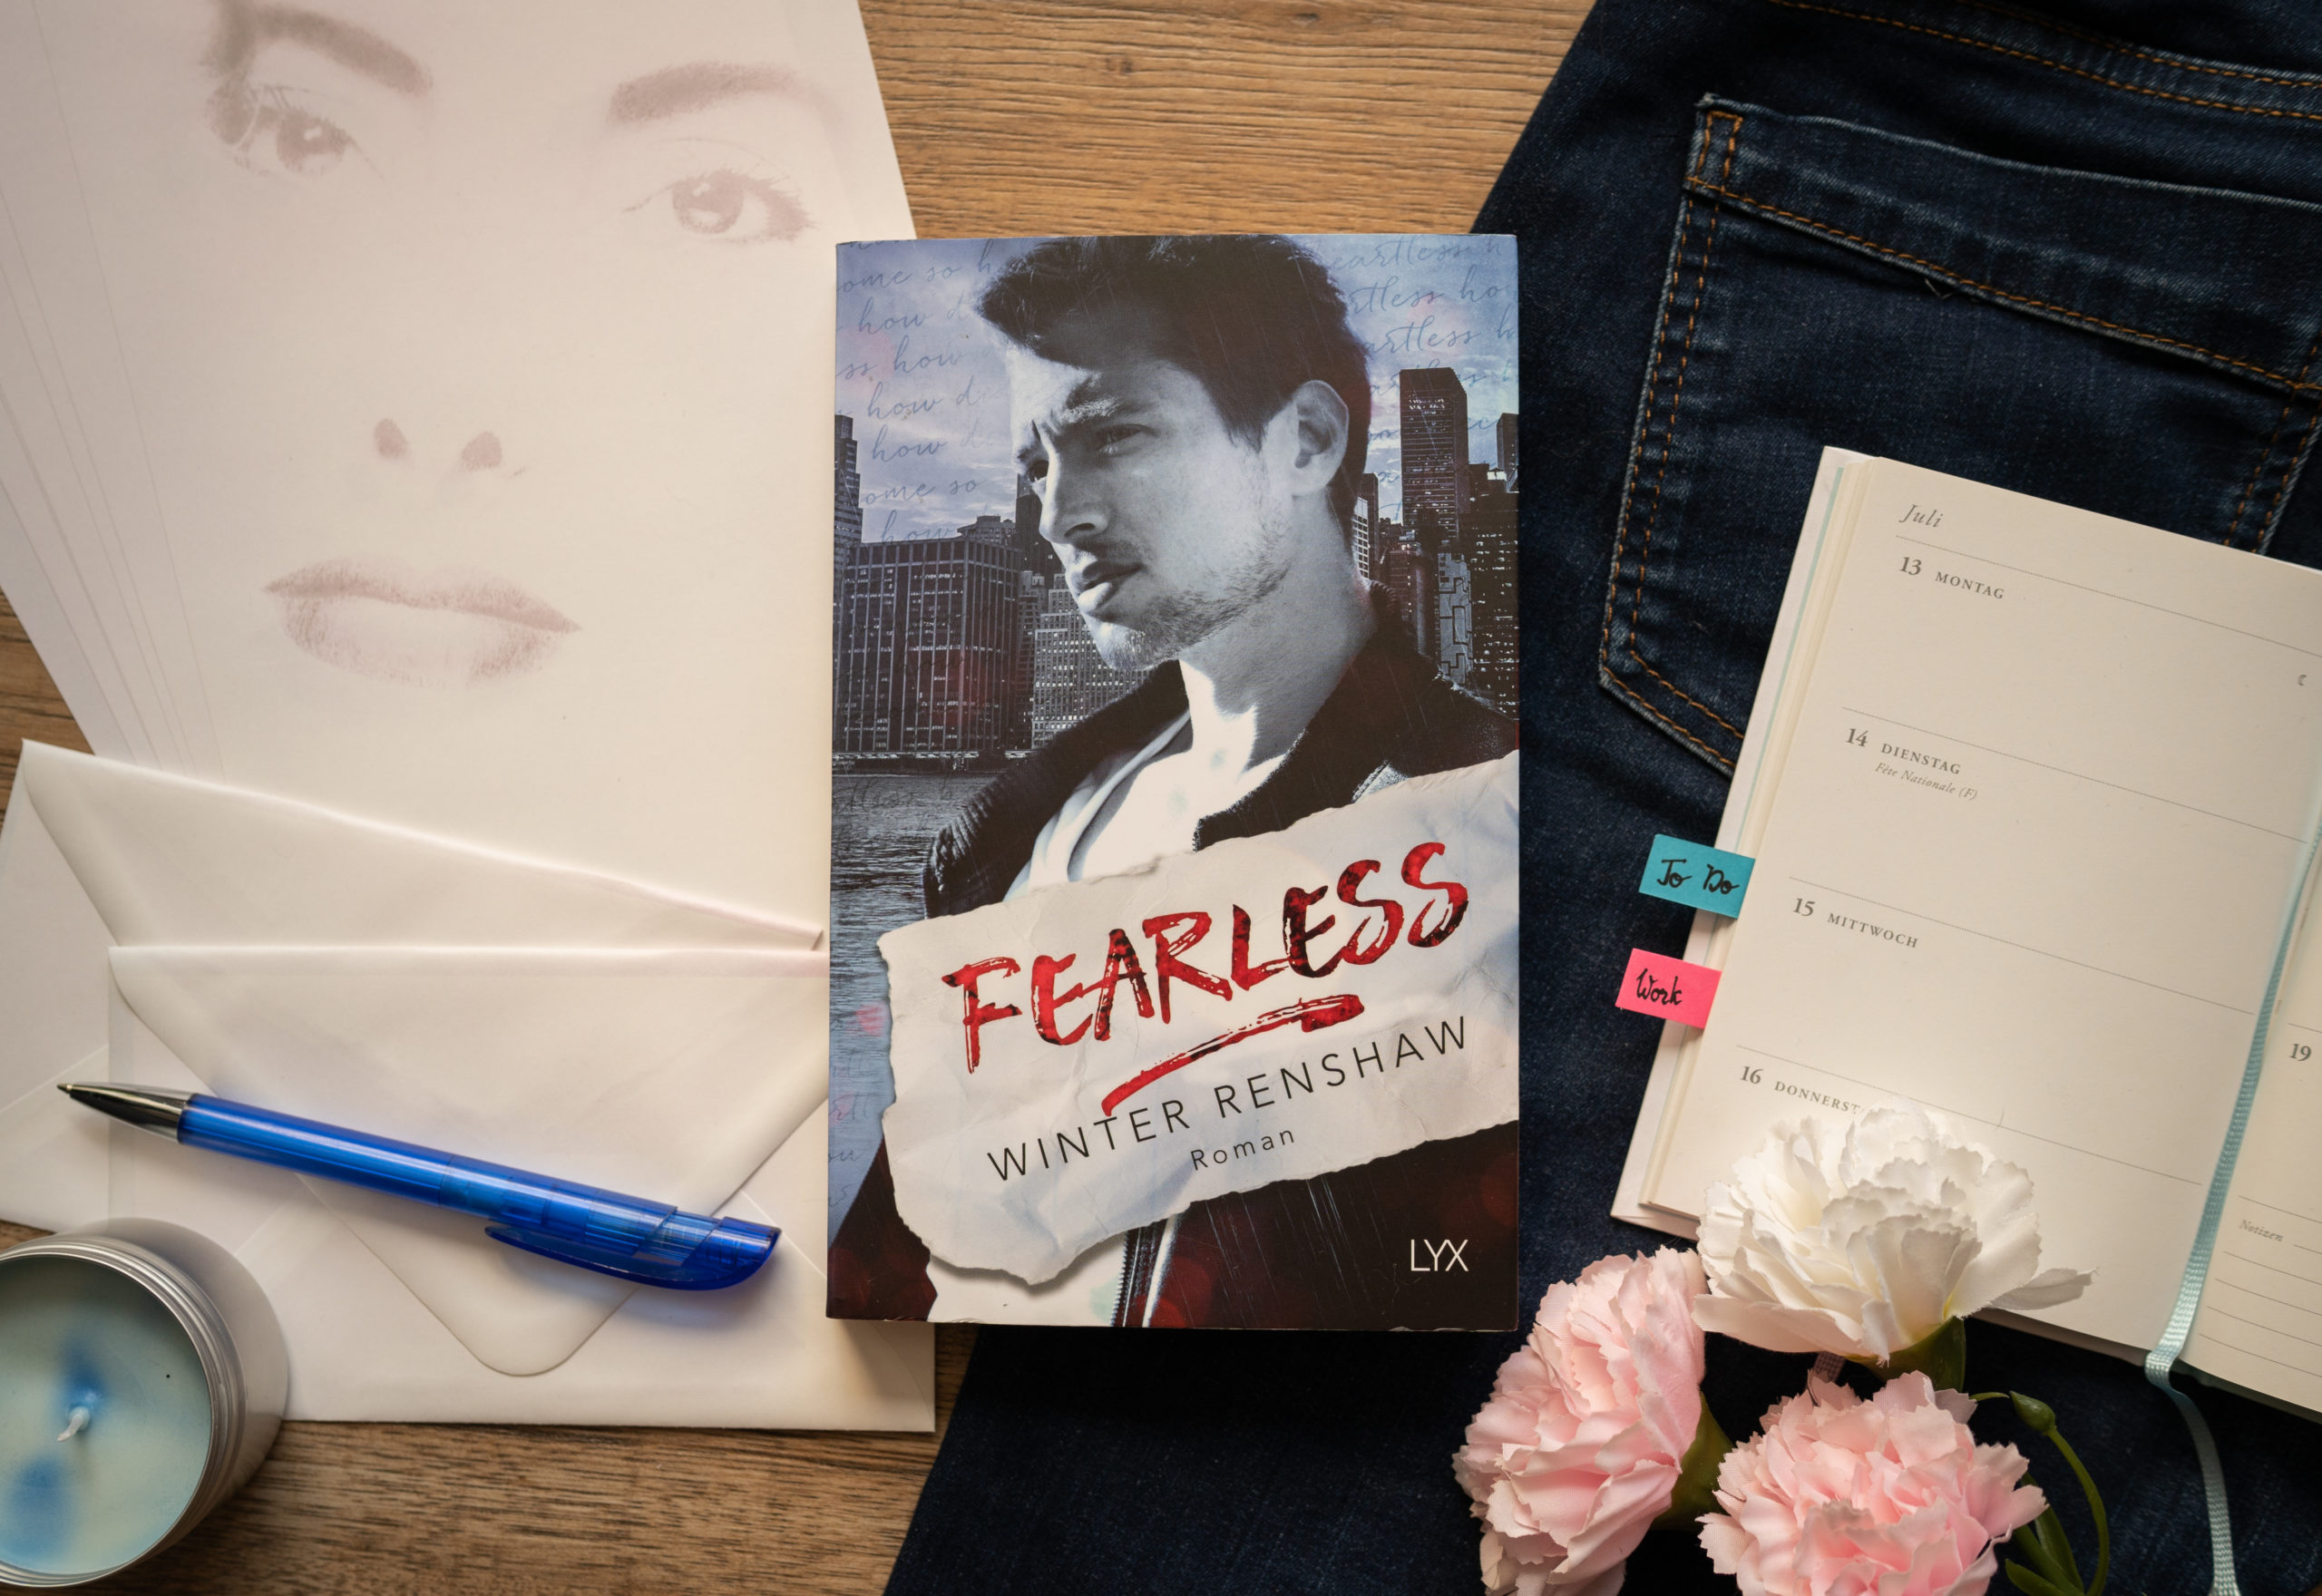 Fearless: Amato Brothers 2 – Winter Renshaw graphic